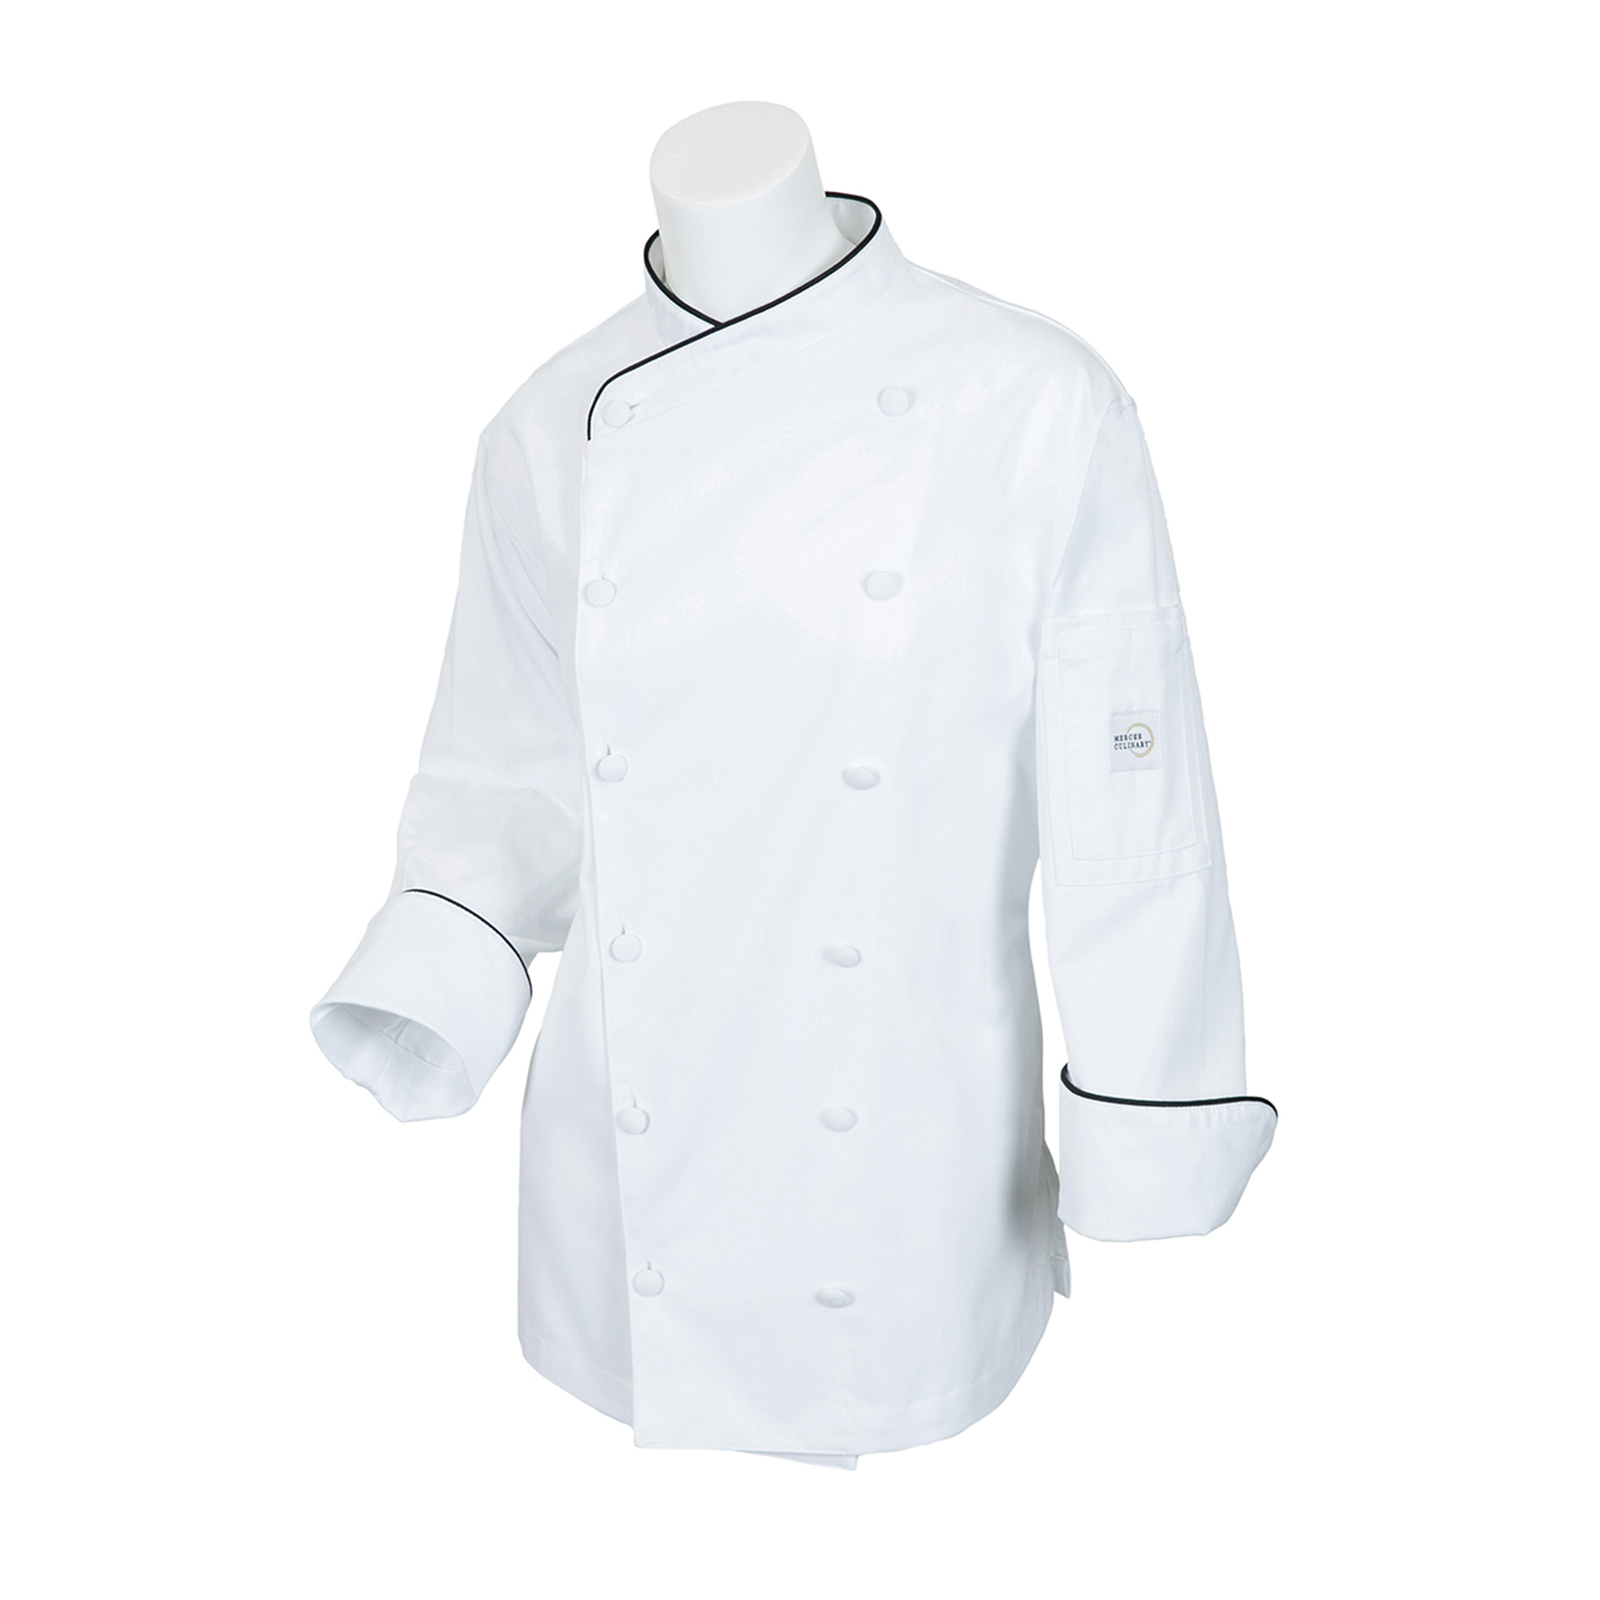 Mercer Culinary M62050WB3X chef's coat